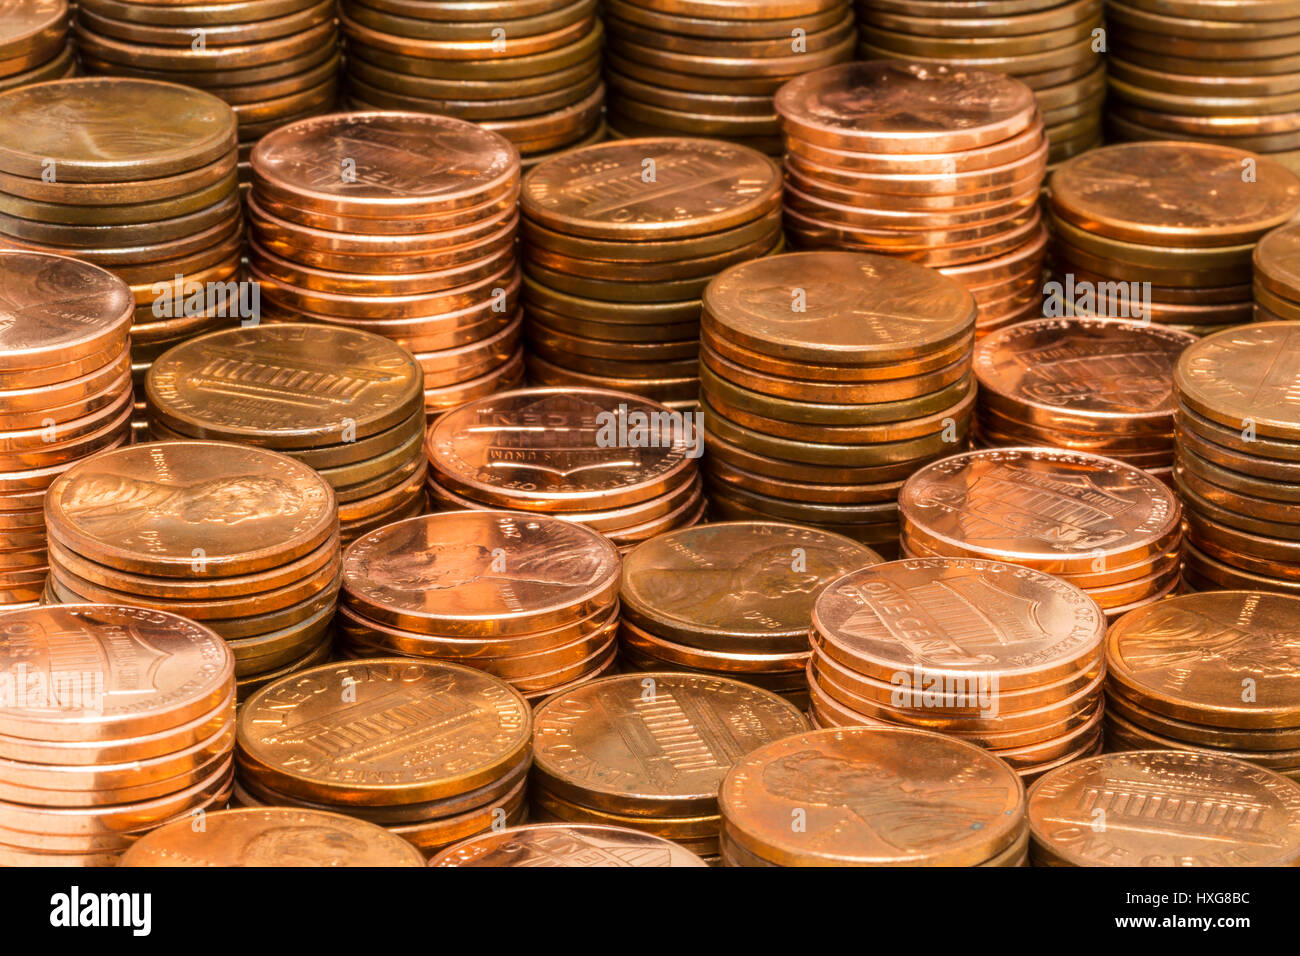 Penny Stacks - Several stacks of pennies at various heights. - Stock Image